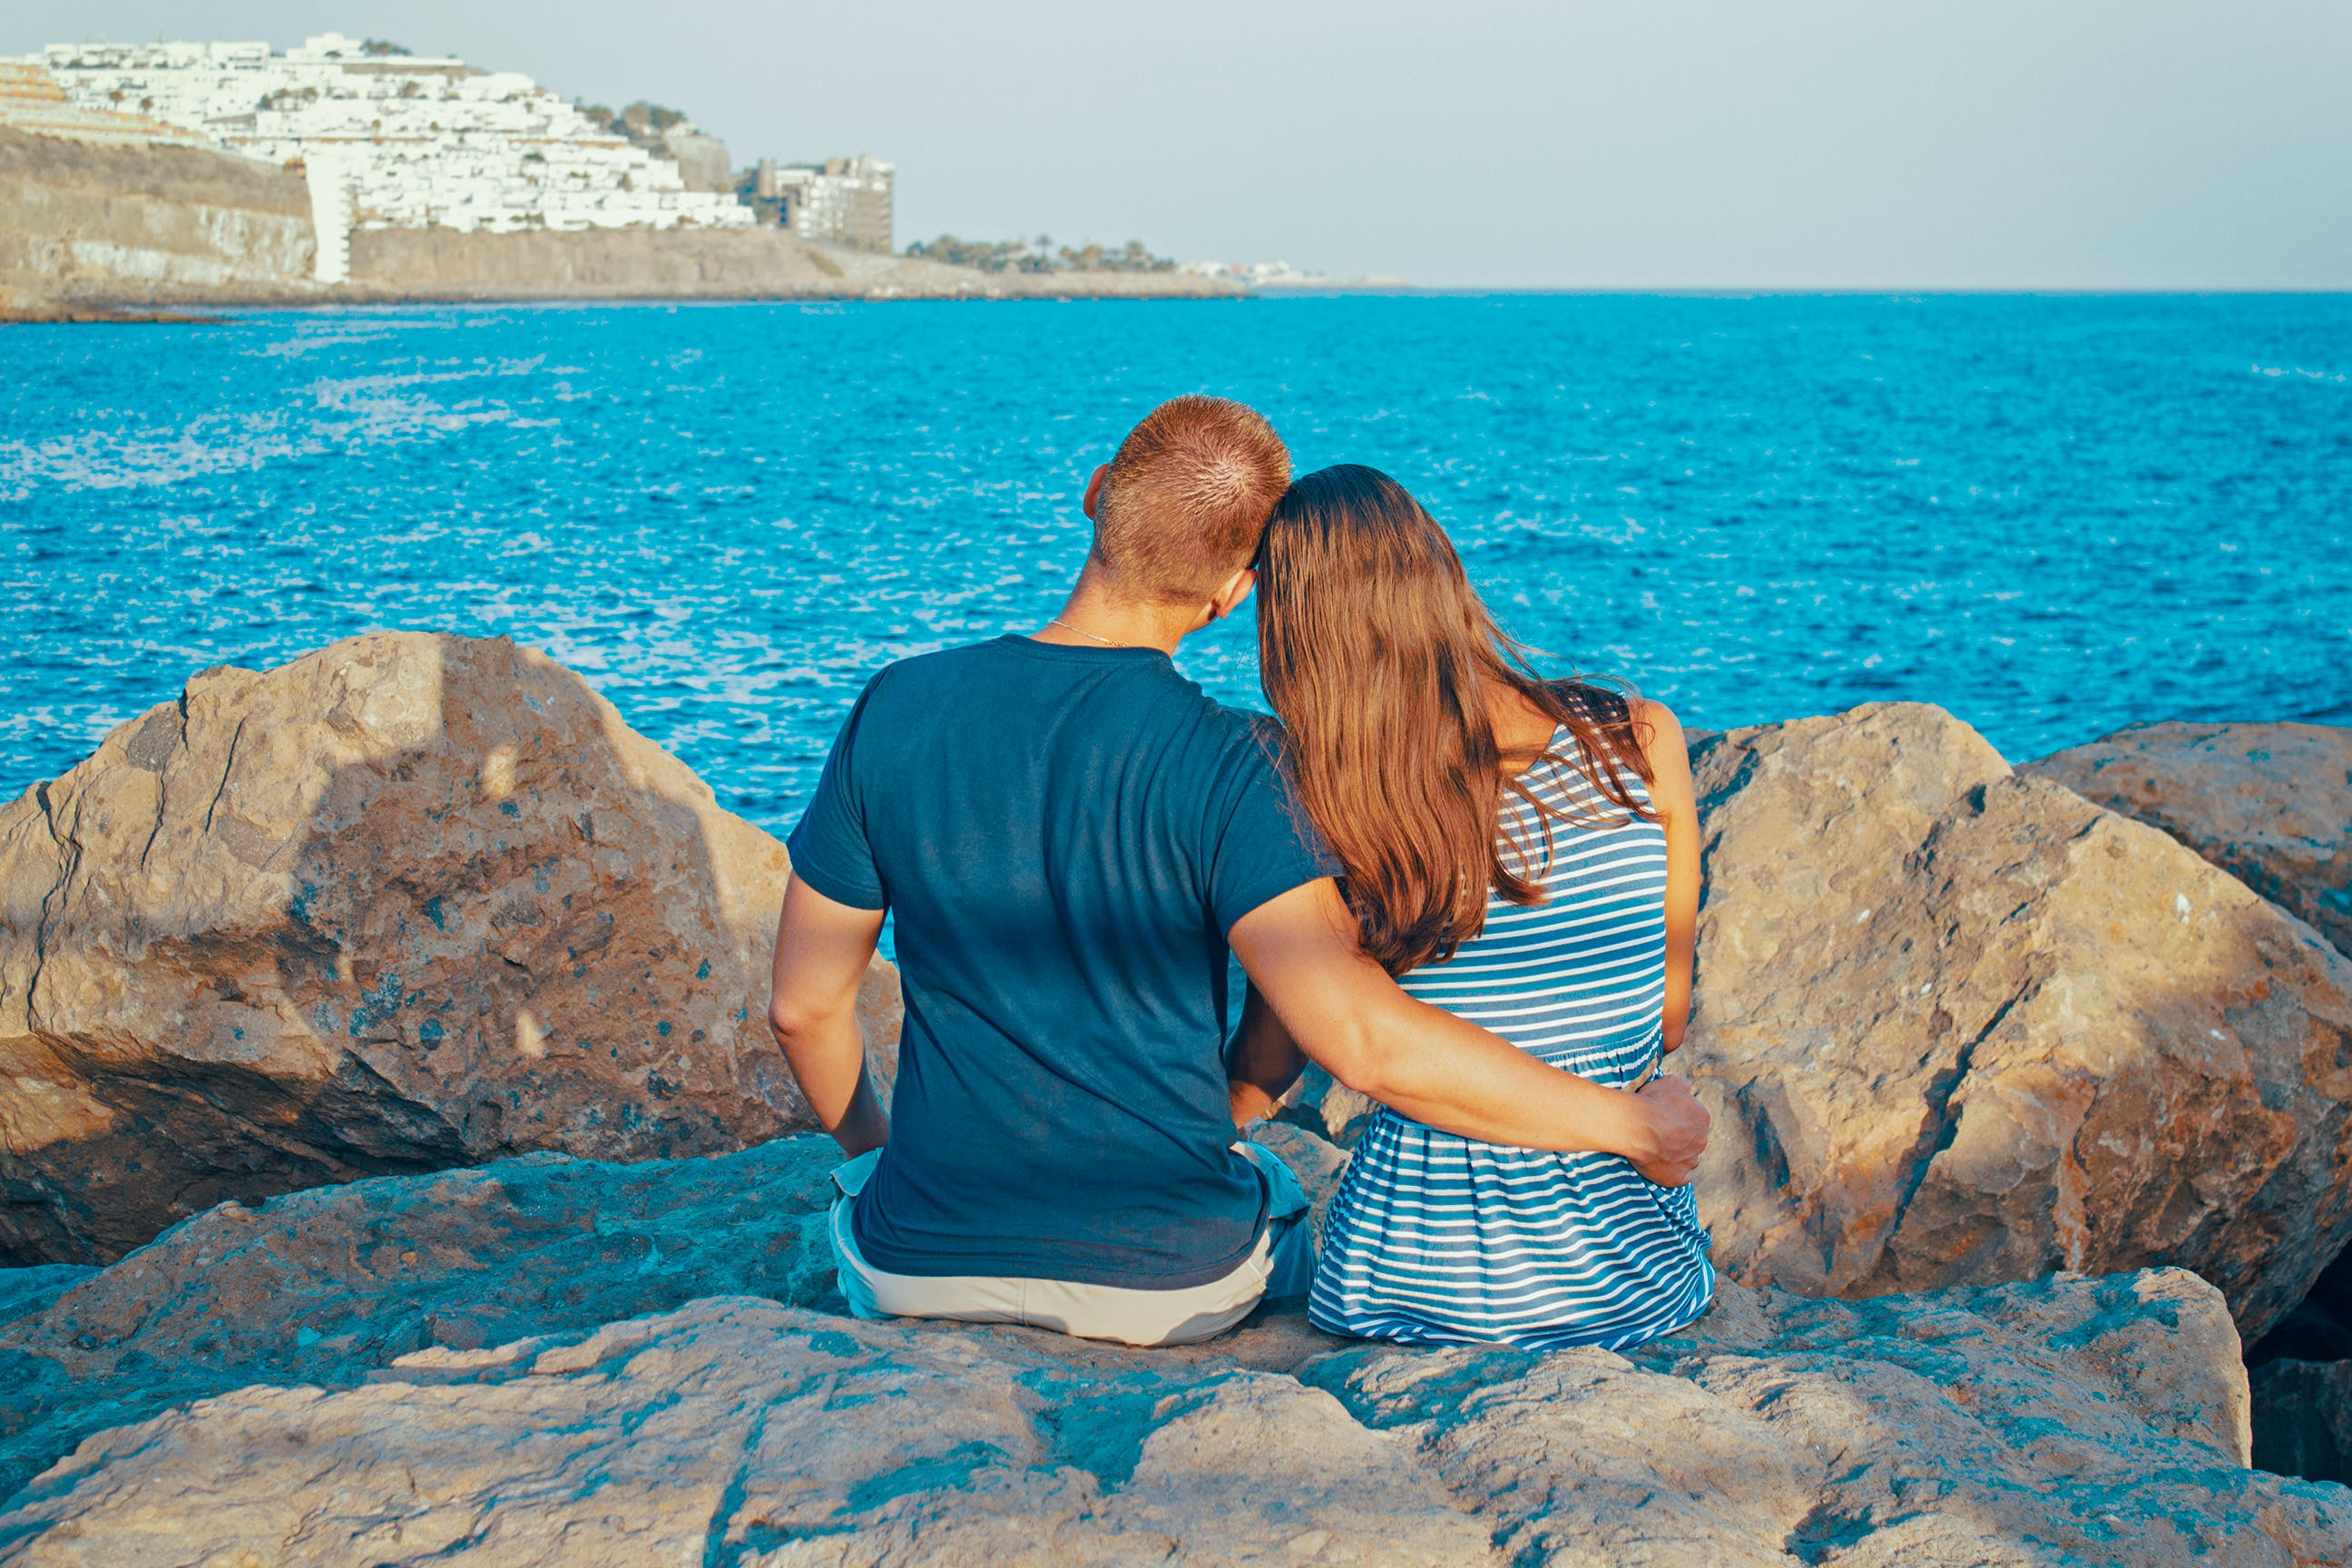 Rear View of Couple Sitting on Beach